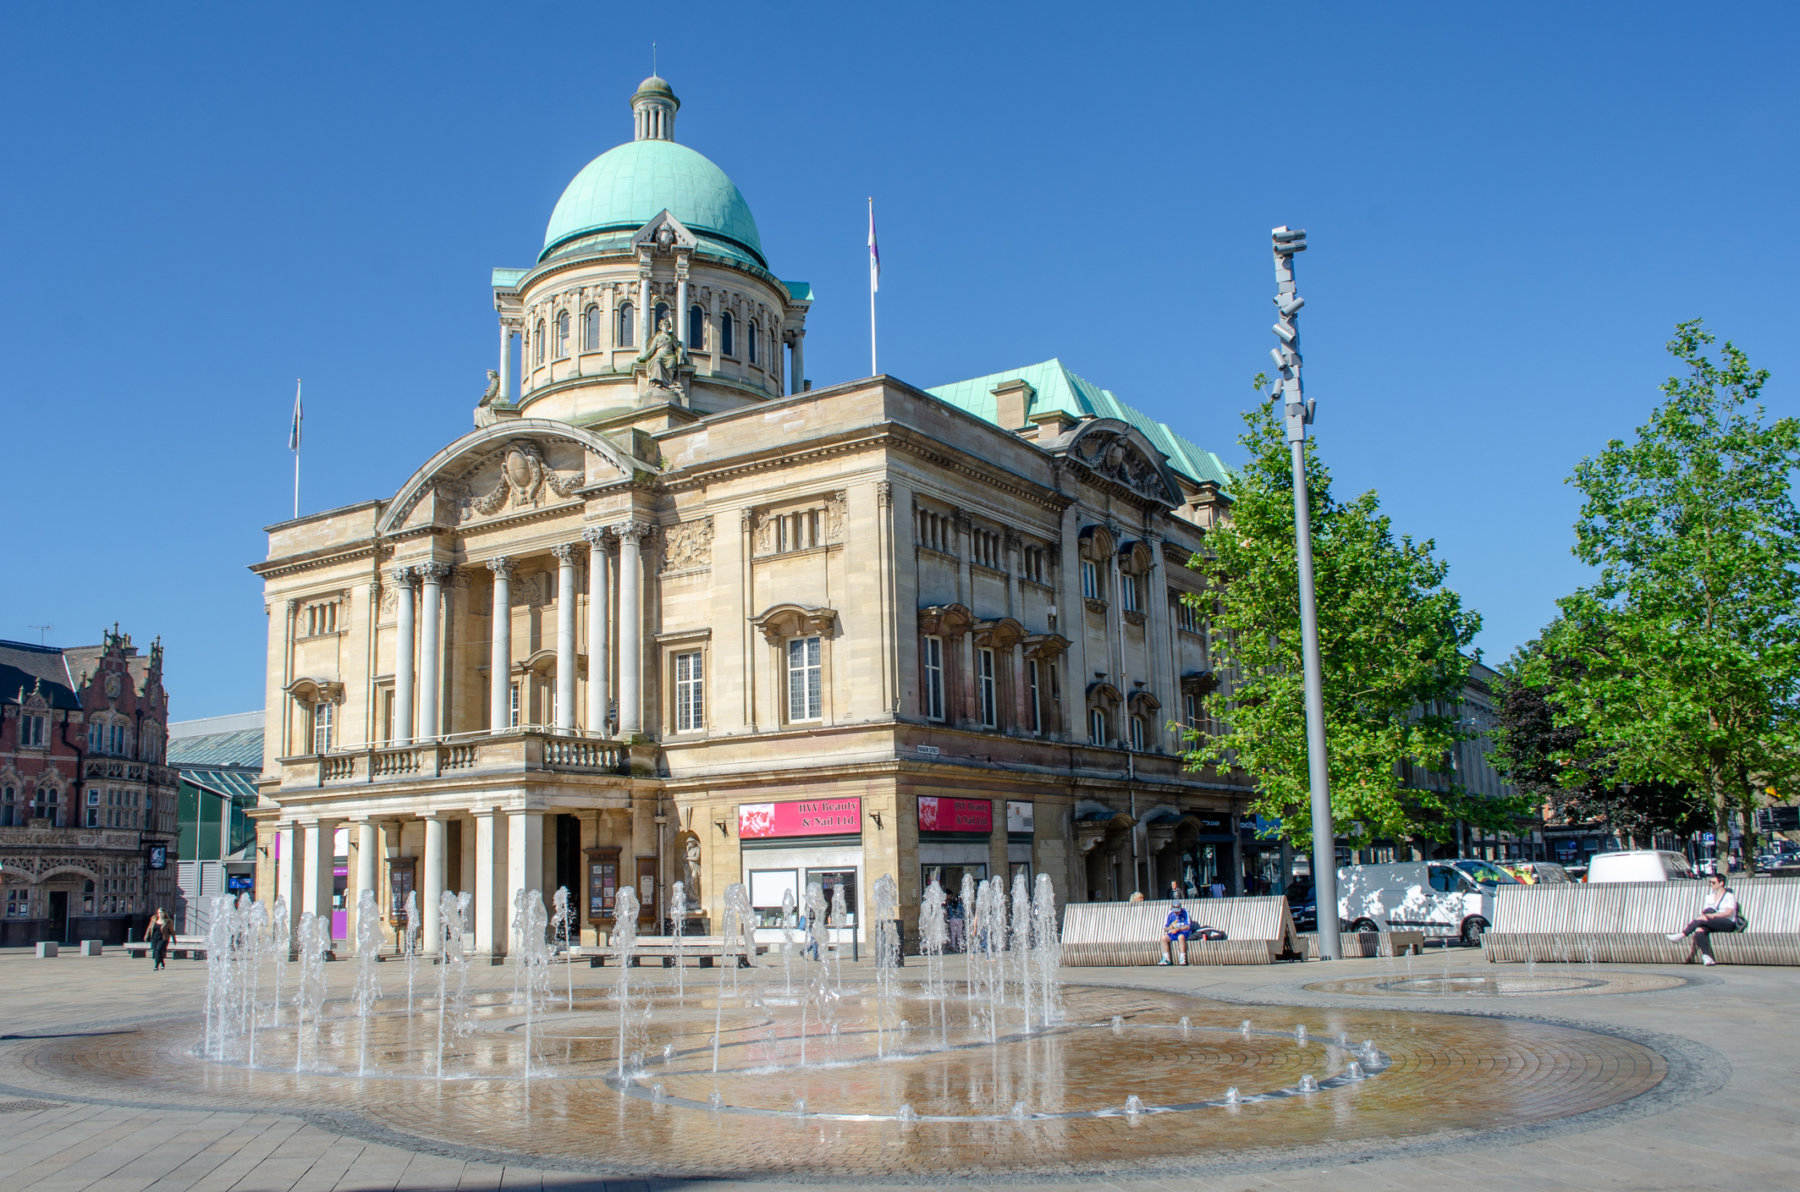 Hull City Hall and the new fountains in Queen Victoria Square